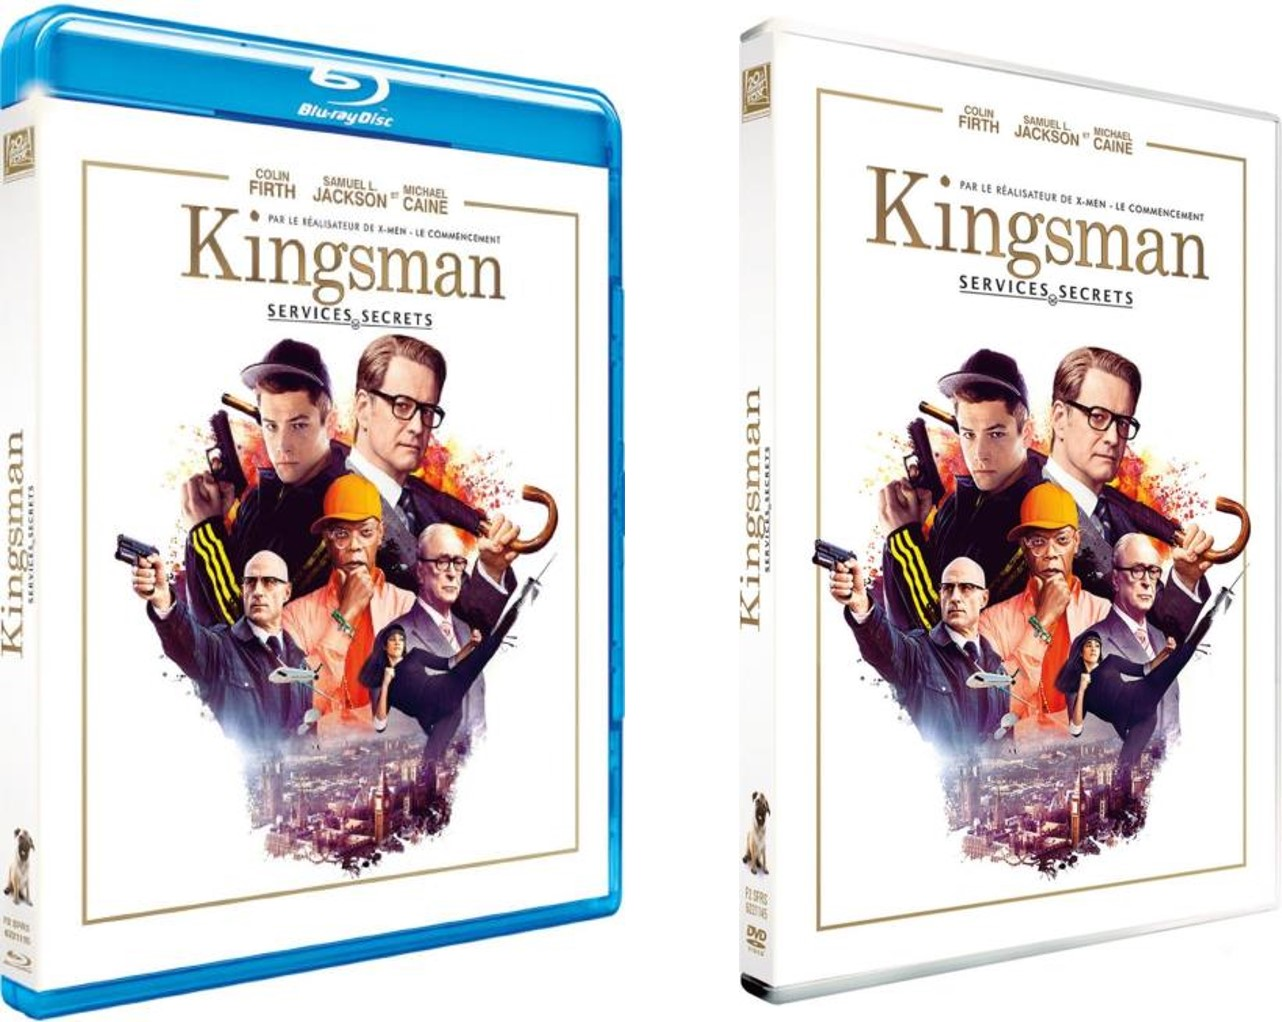 KINGSMAN SERVICES SECRETS - Visuel Sortie Blu-ray DVD France Matthew Vaughn Colin Firth - Go with the Blog